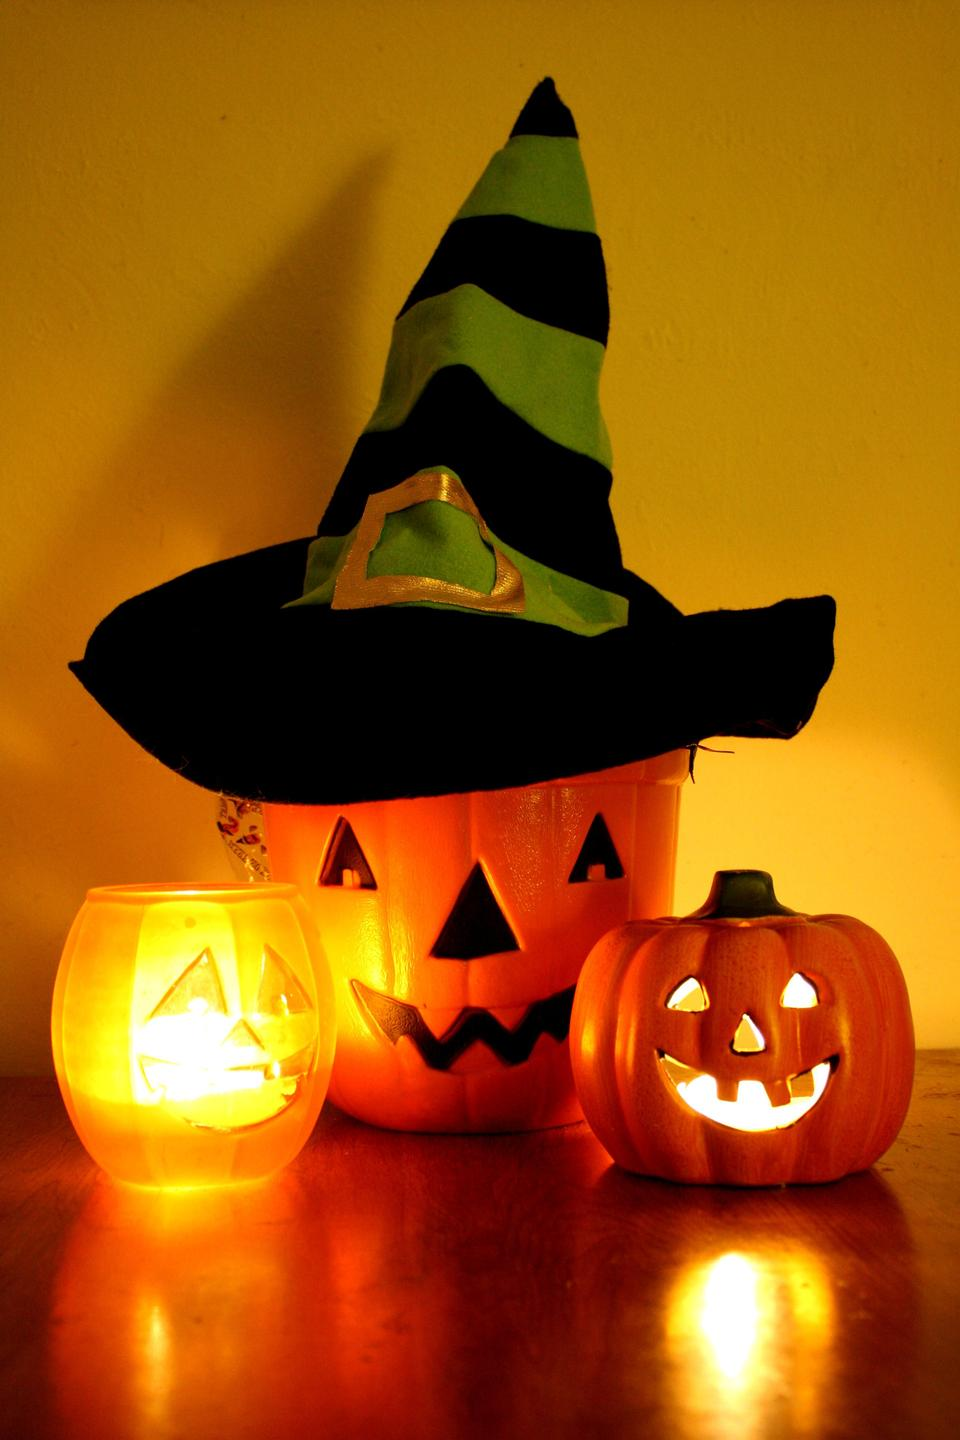 Free Halloween Jack-o-Lantern Bucket with Witch Hat and Candles